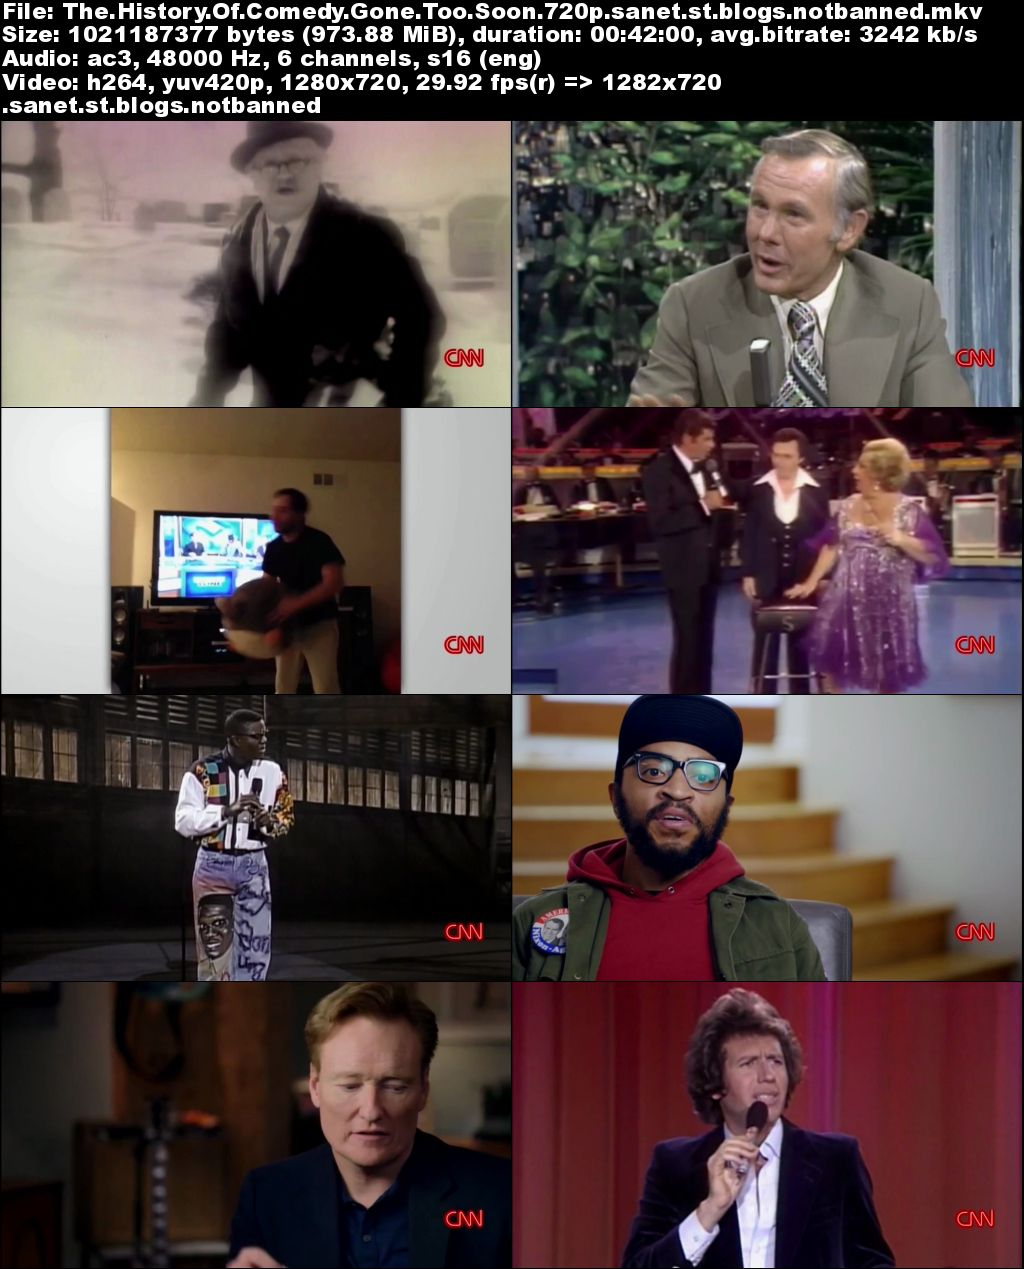 Download CNN - The History of Comedy Series 2: Gone Too Soon